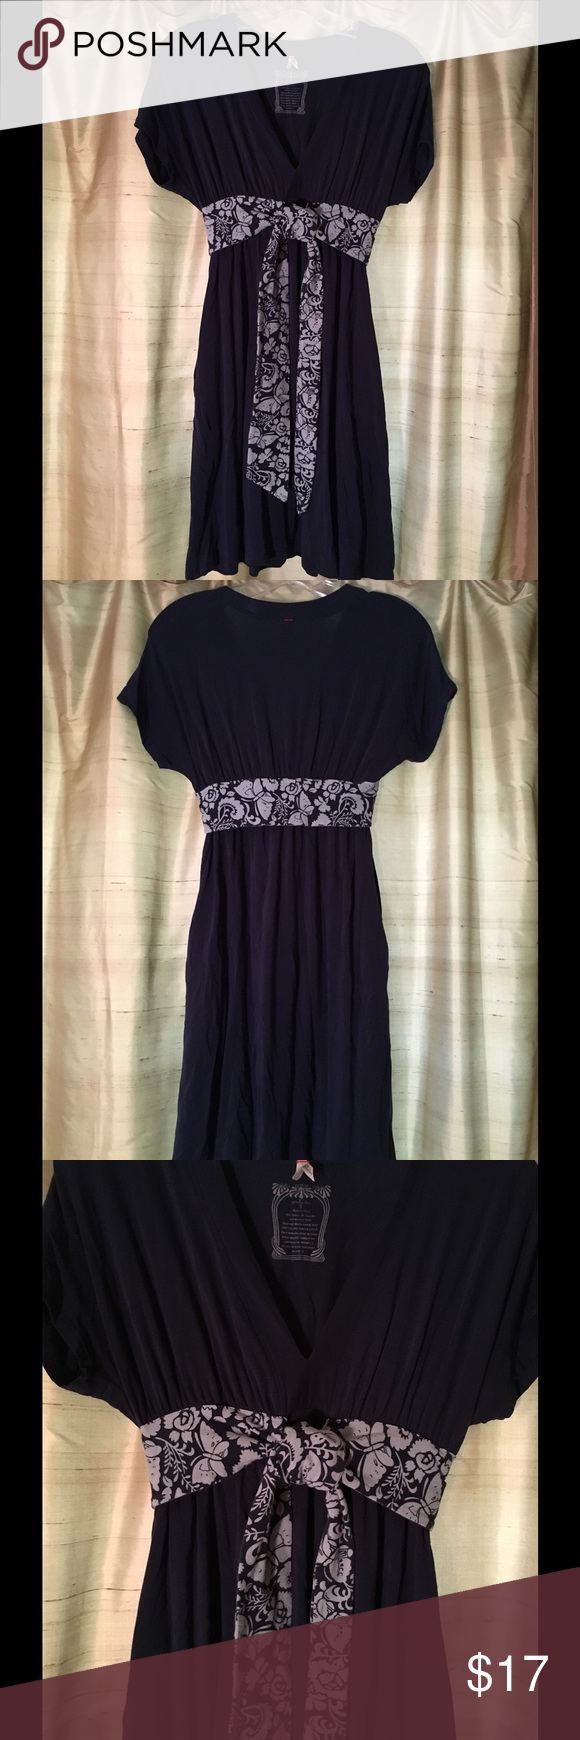 "Pinkerton navy dress Navy dress with ""scarf tie"" around midsection. Short sleeve and has pockets. 95% tencel 5% spandex.  Good condition Pinkerton Dresses"